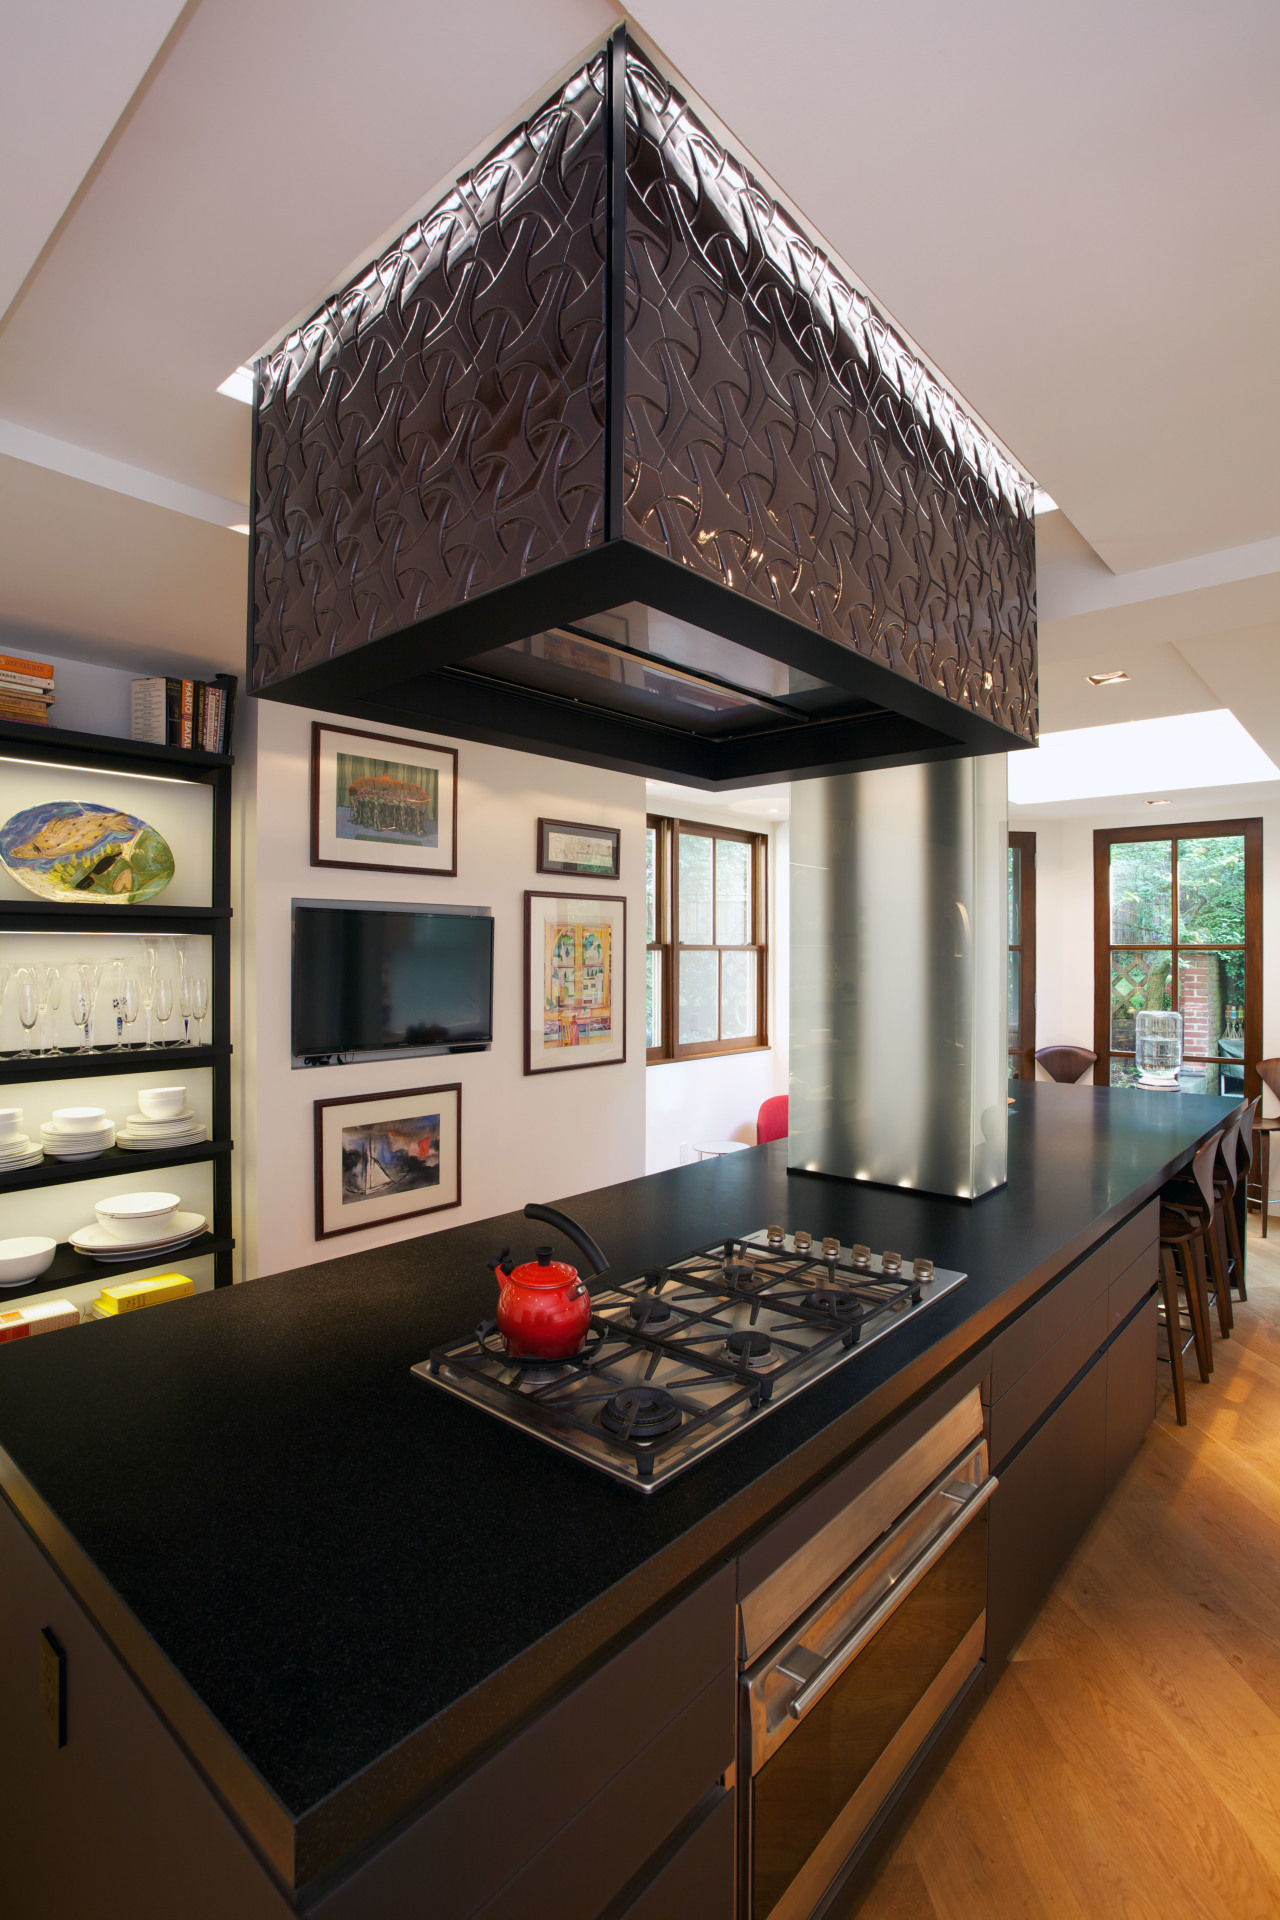 A custom tiled range hood is a key countertop, interior design, kitchen, room, black, gray